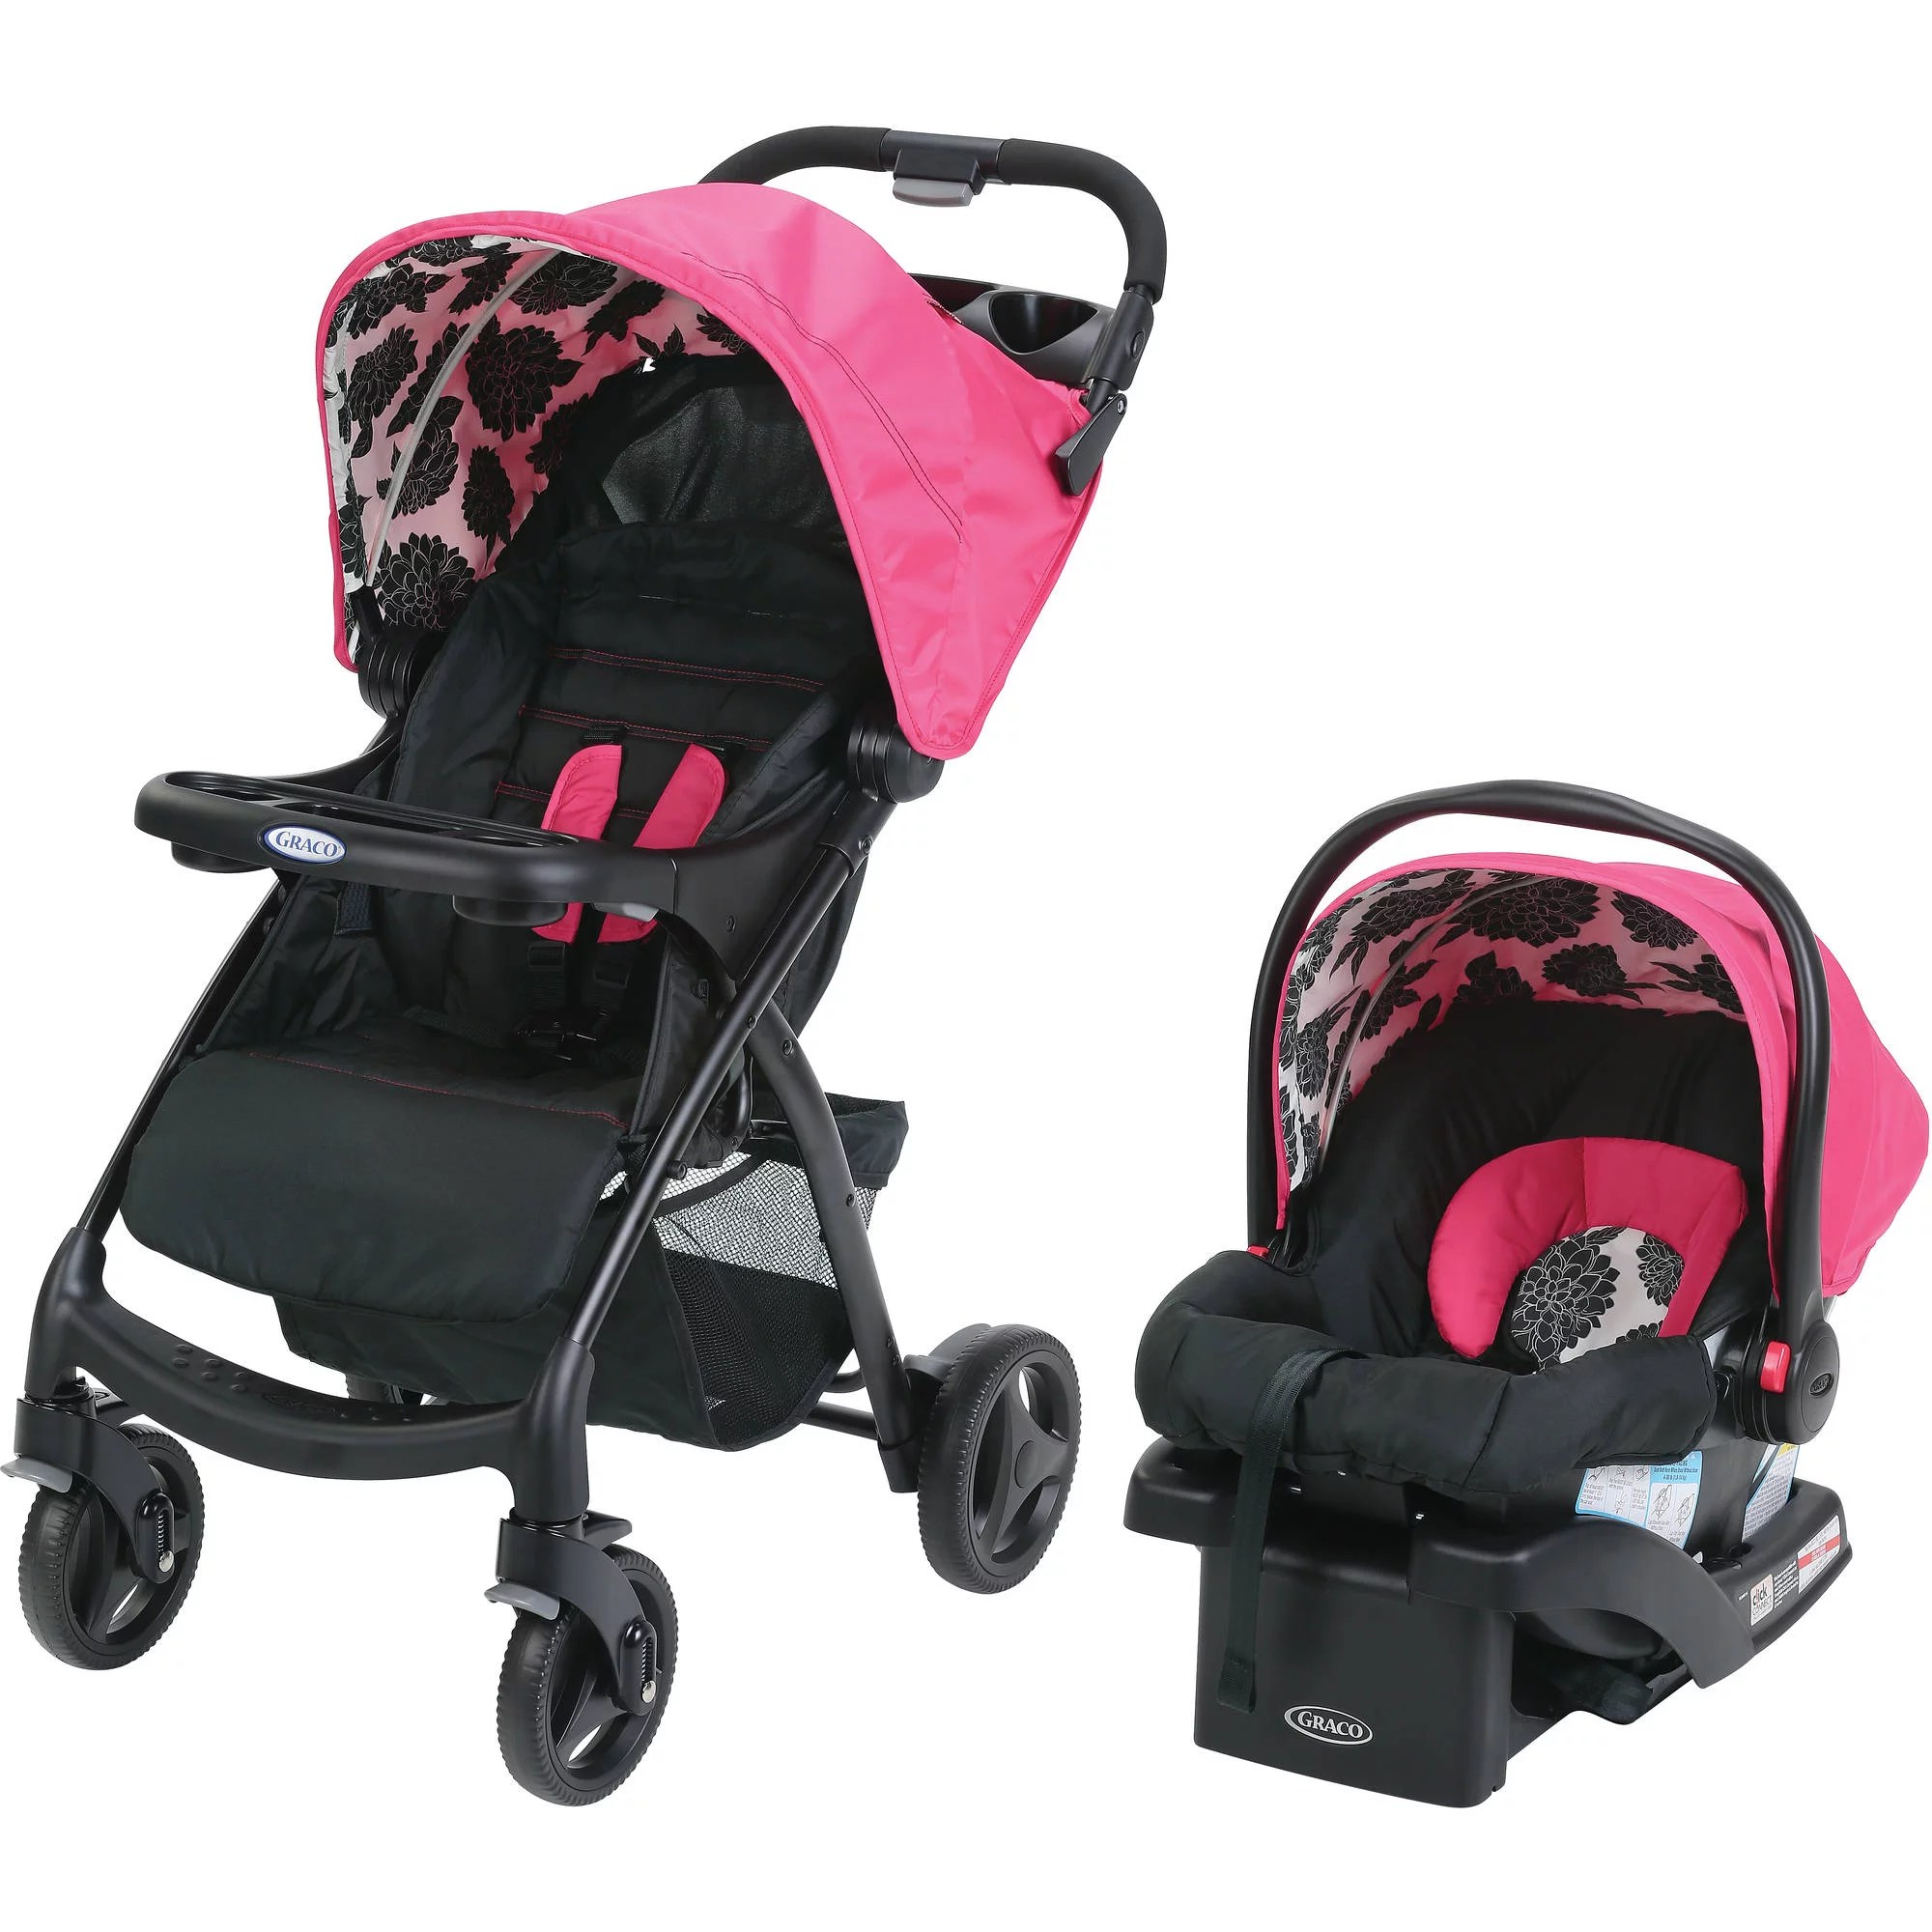 Stroller Travel System Ebay Details About Graco Verb Click Connect Travel System Azalea Stroller Baby From The On Child